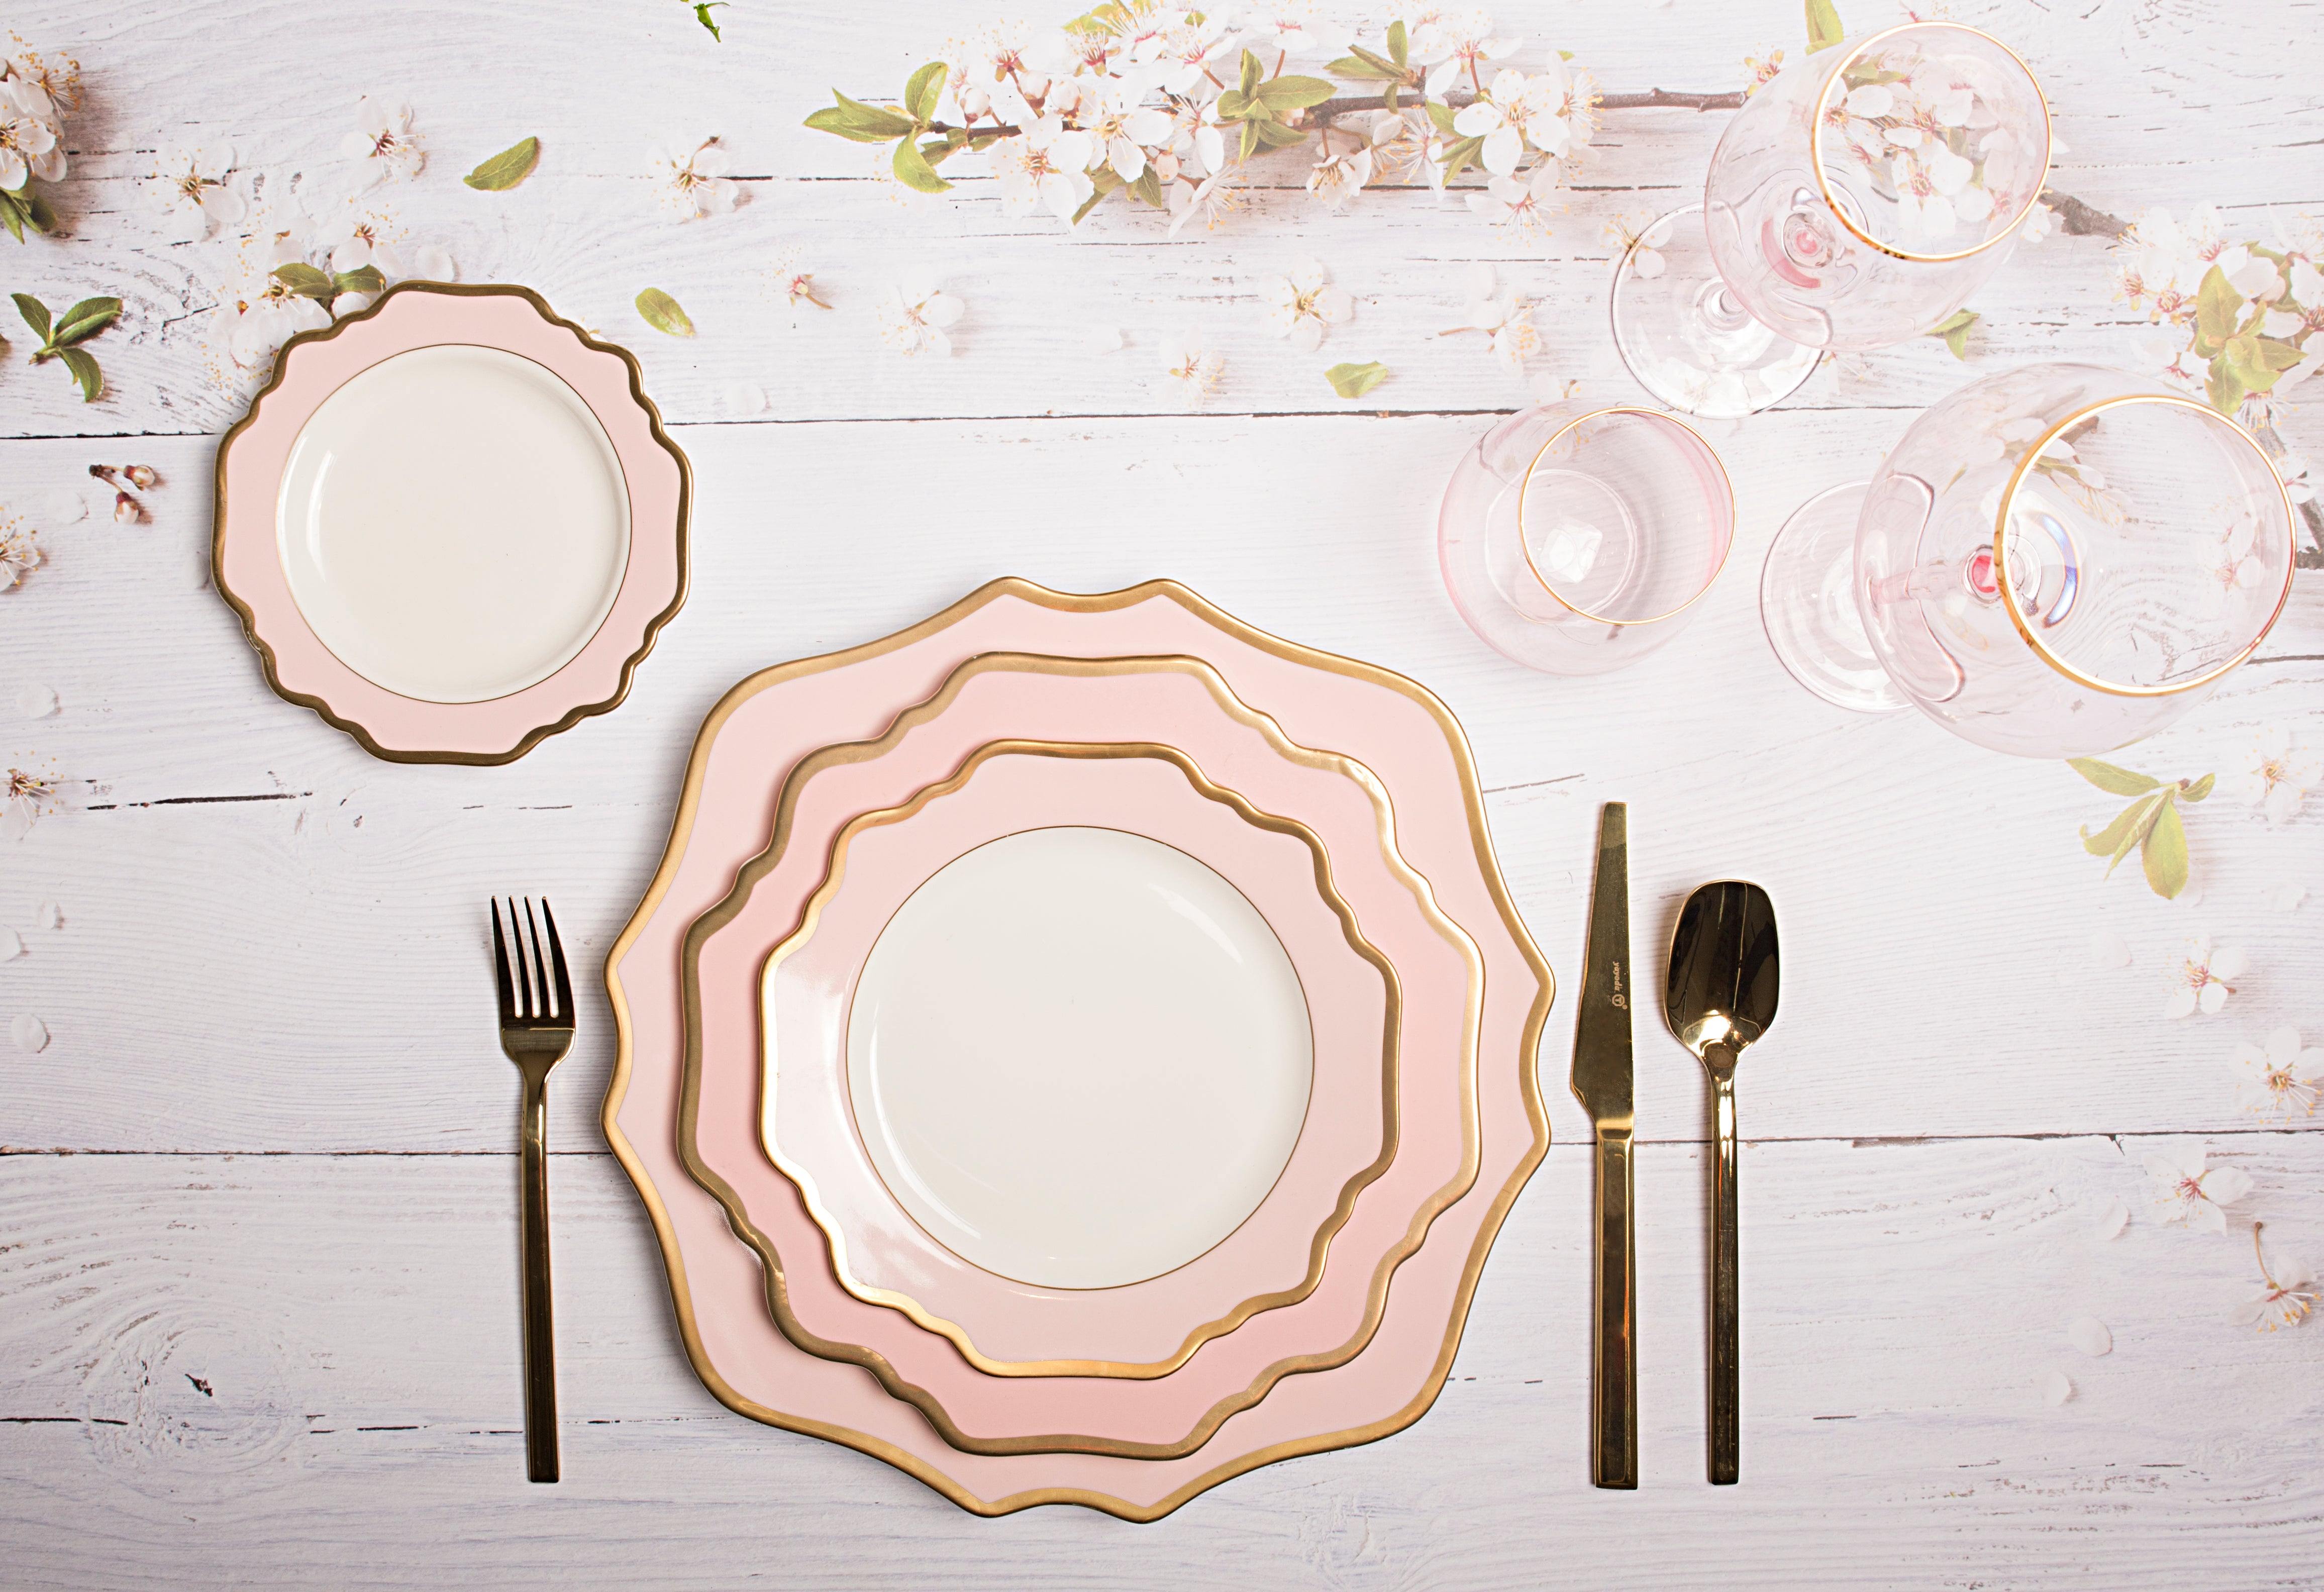 NetDecor Dining Crockery & Glassware